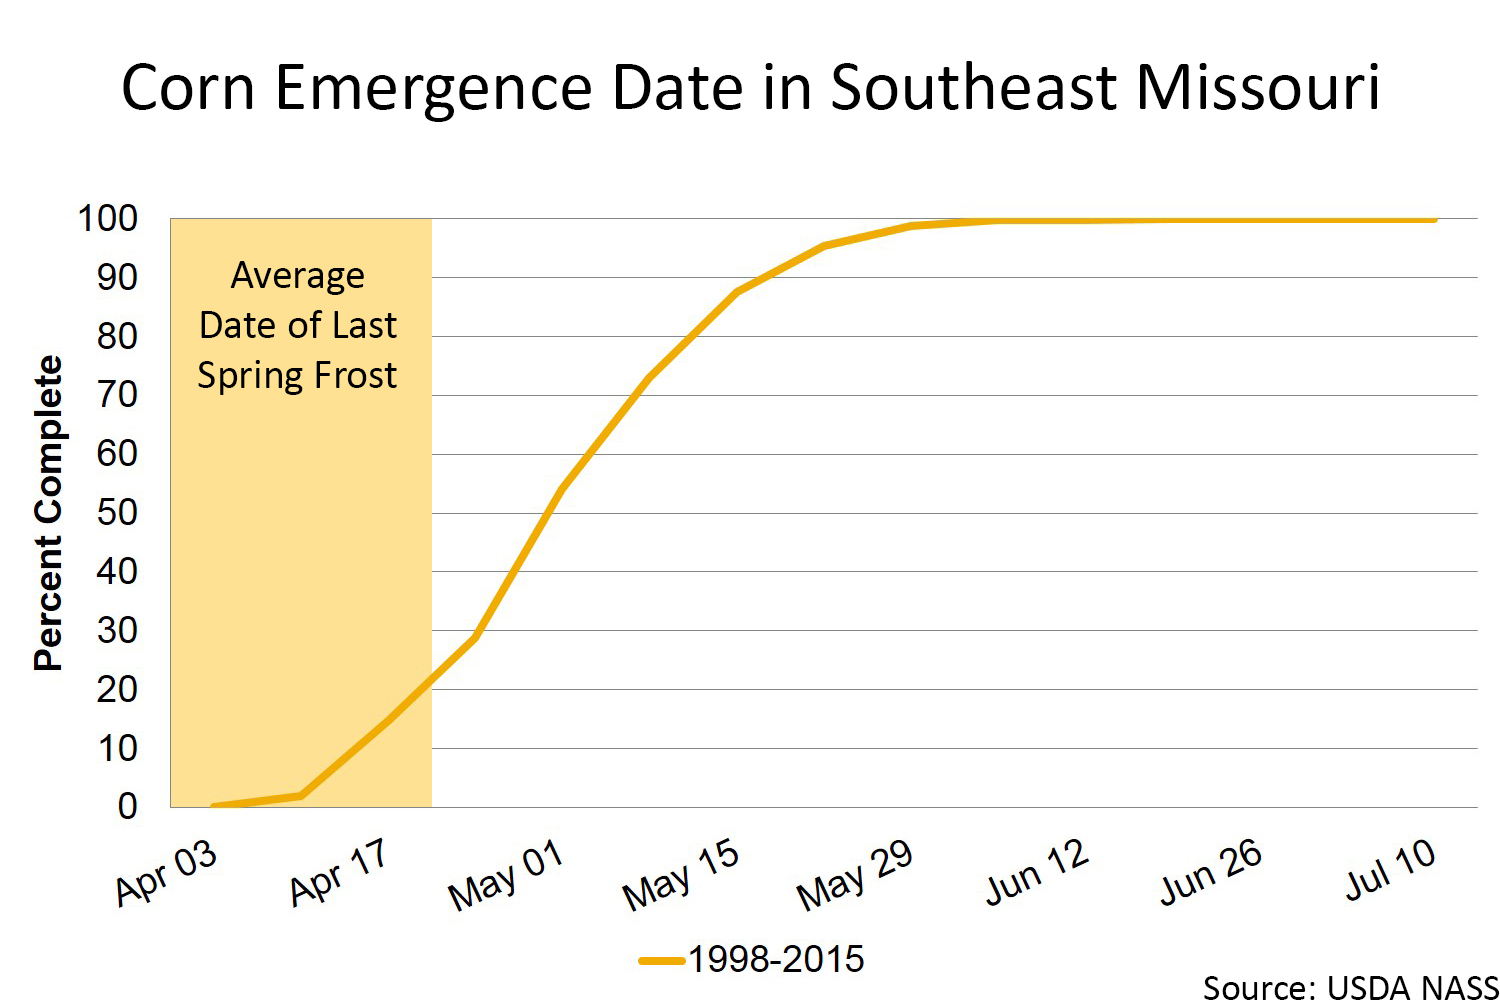 Corn emergence date in southeast Missouri chart